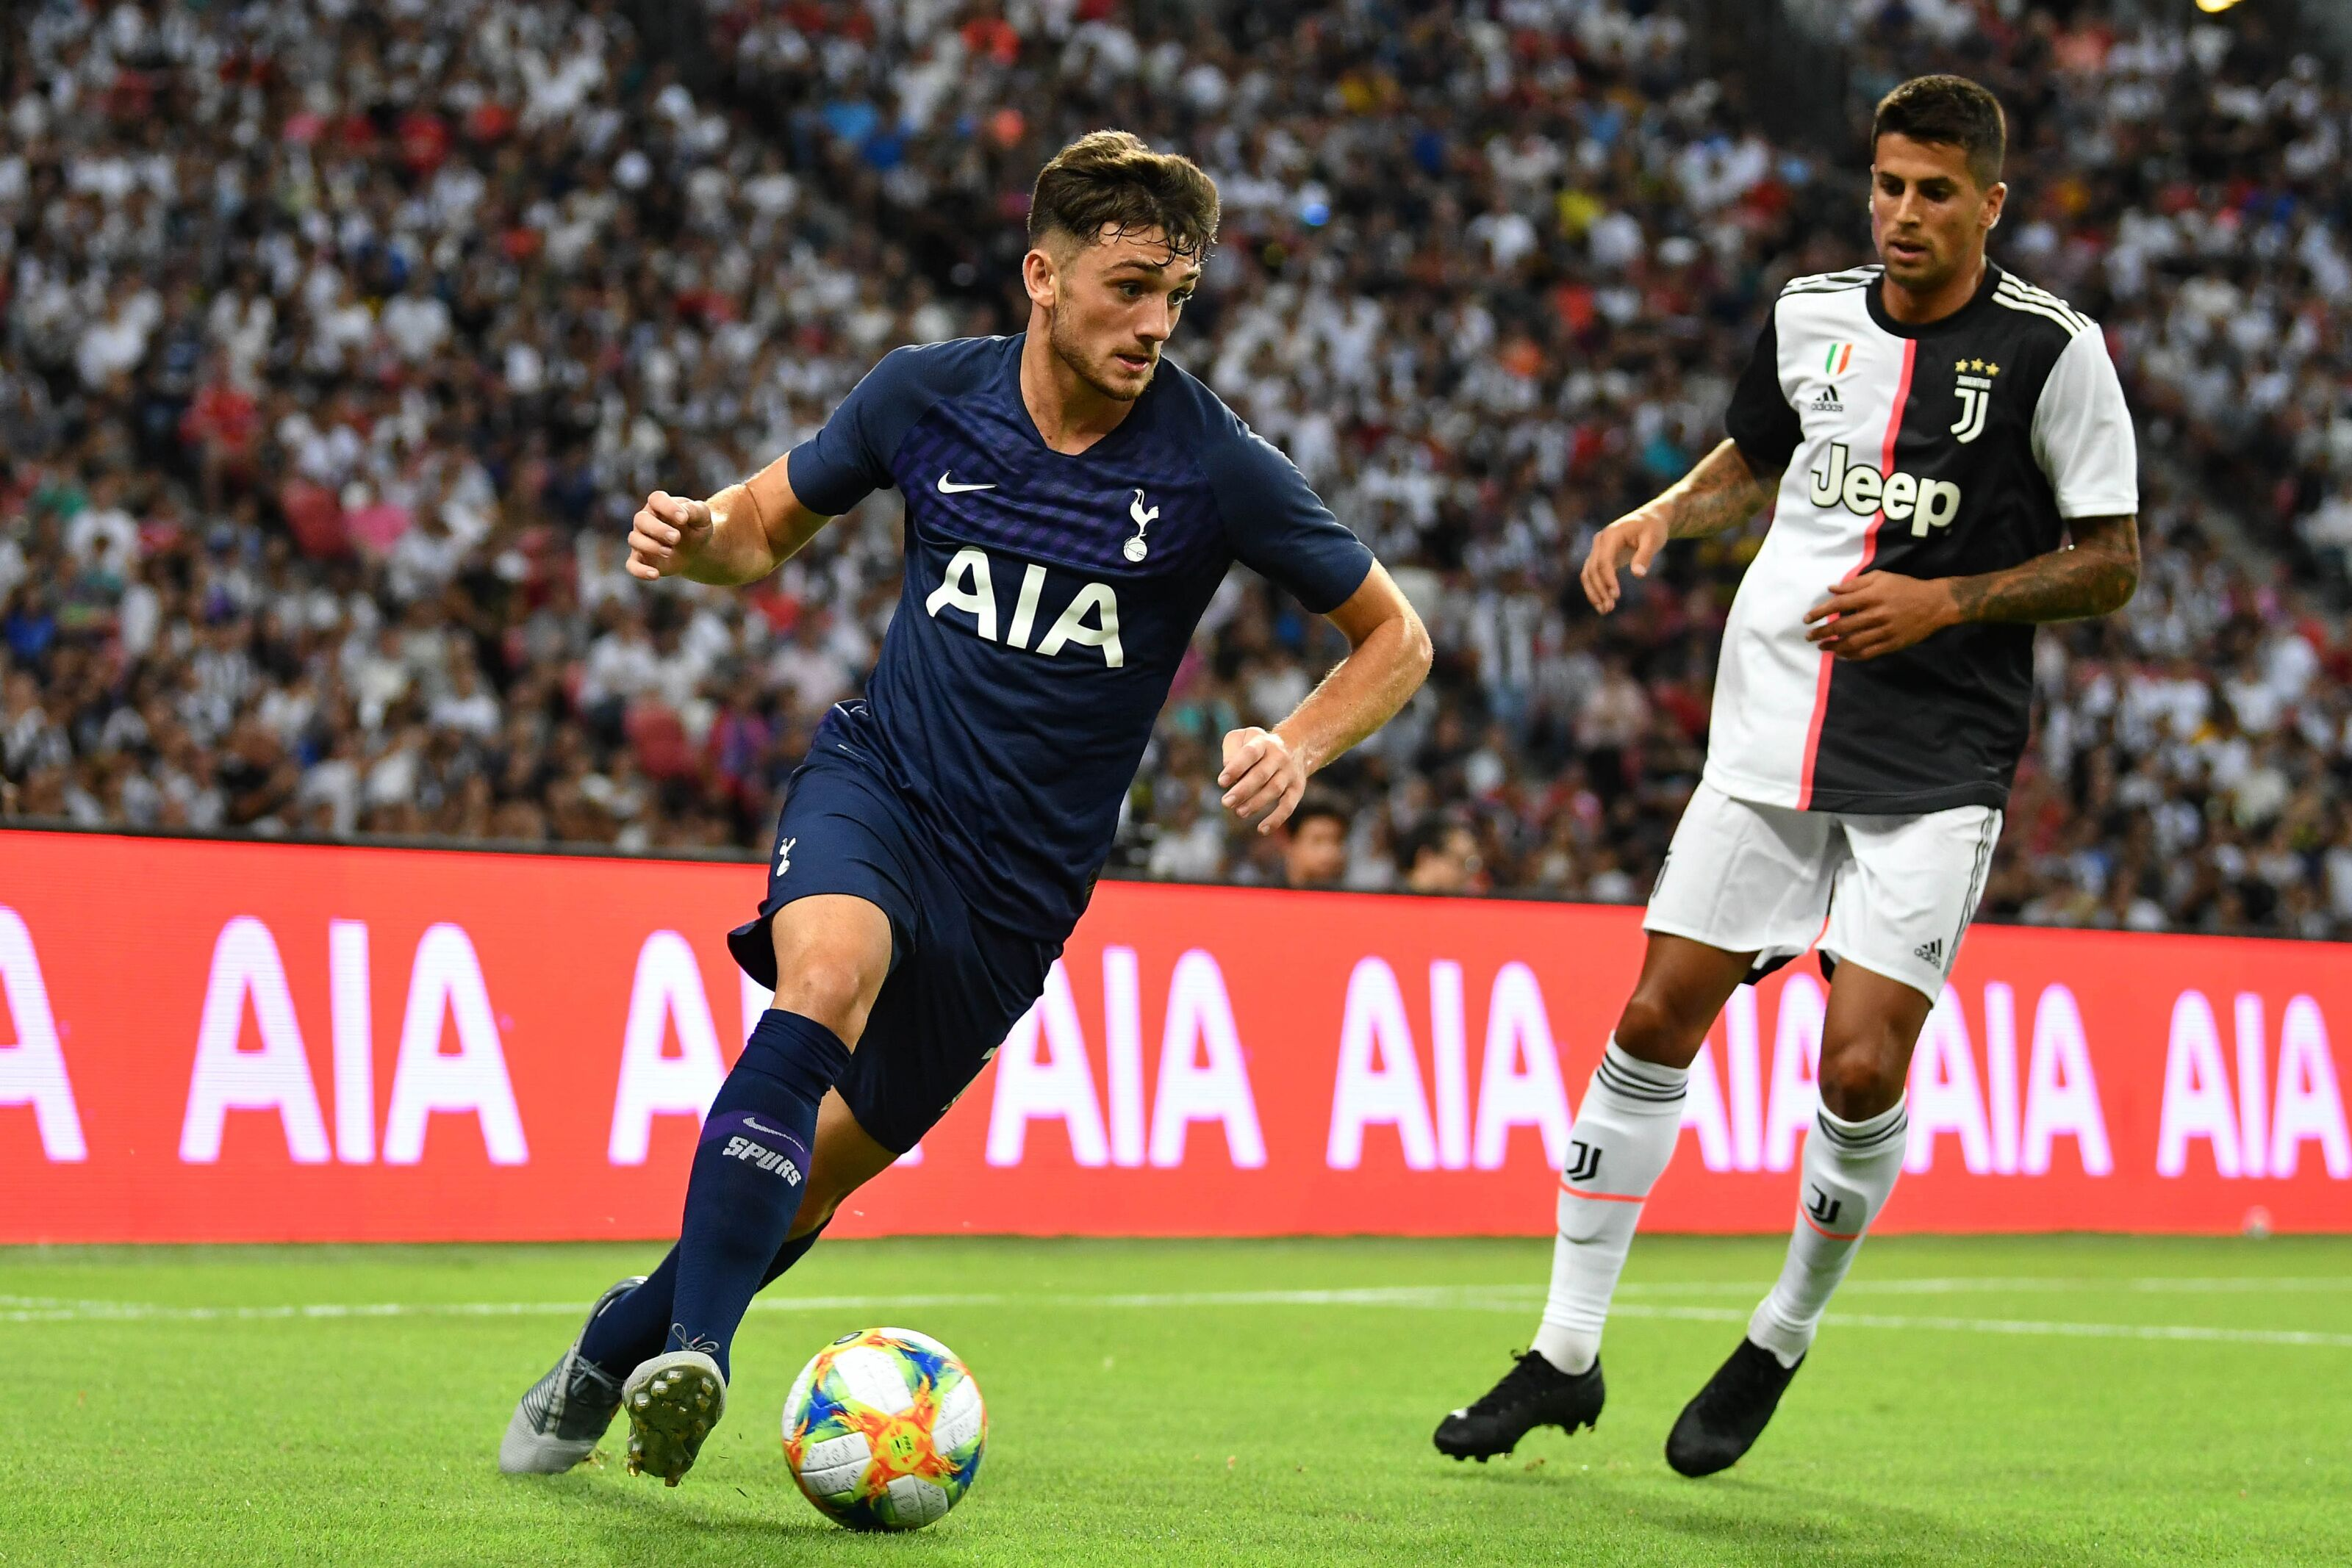 Troy Parrott is the answer to Tottenham's issues at striker